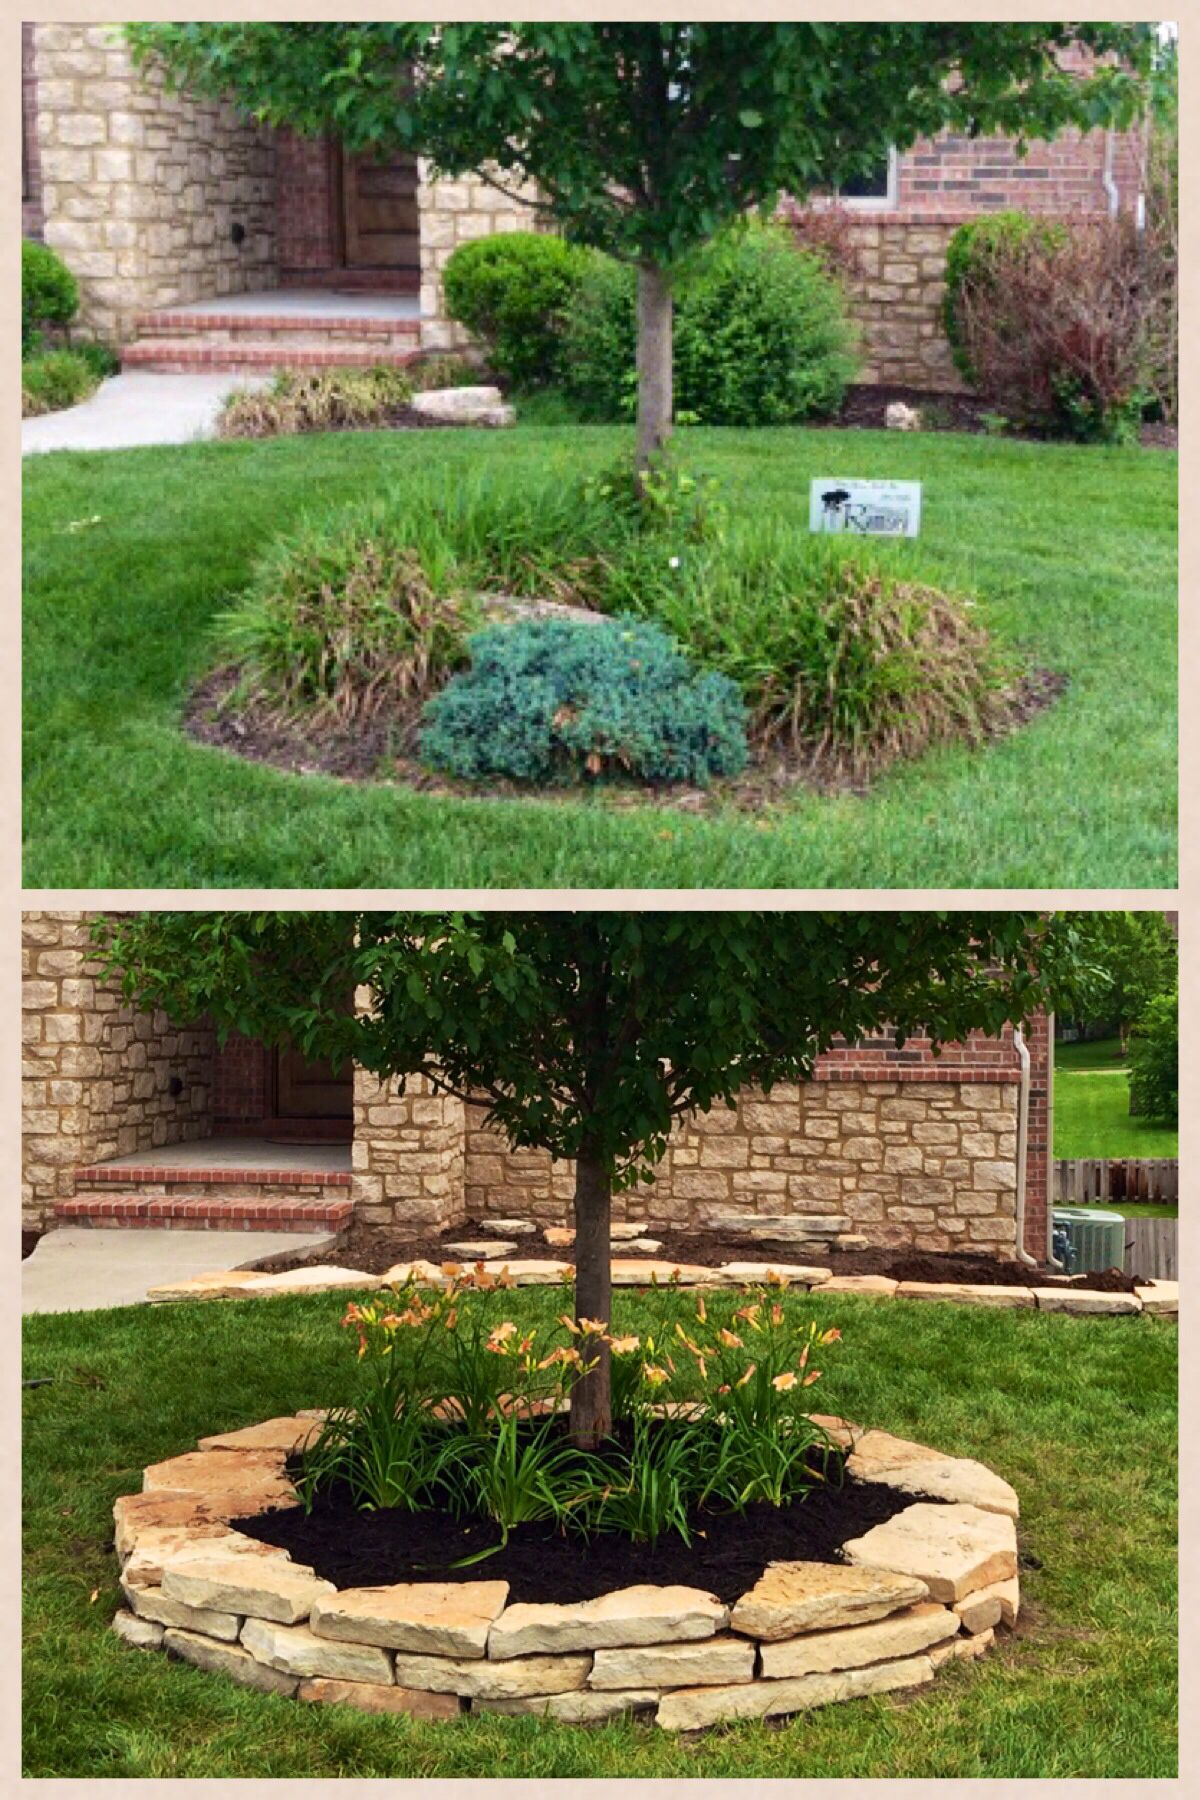 Front yard landscape project - good idea to add some pizzazz ...